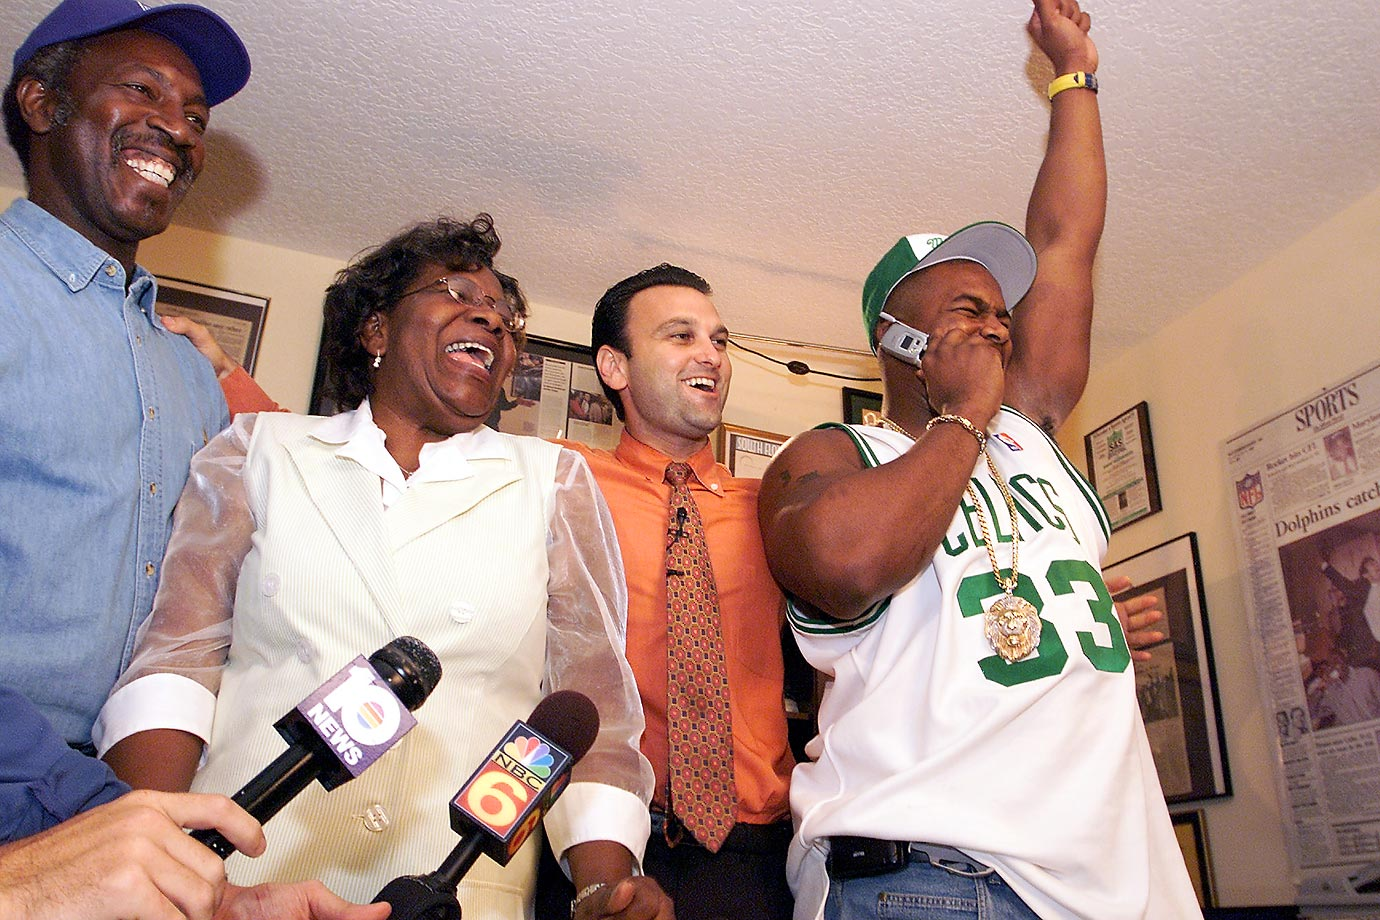 Miami defensive end Jerome McDougle celebrates with his parents and agent after he was taken by the Philadelphia Eagles with the 15th pick in the 2003 NFL draft.